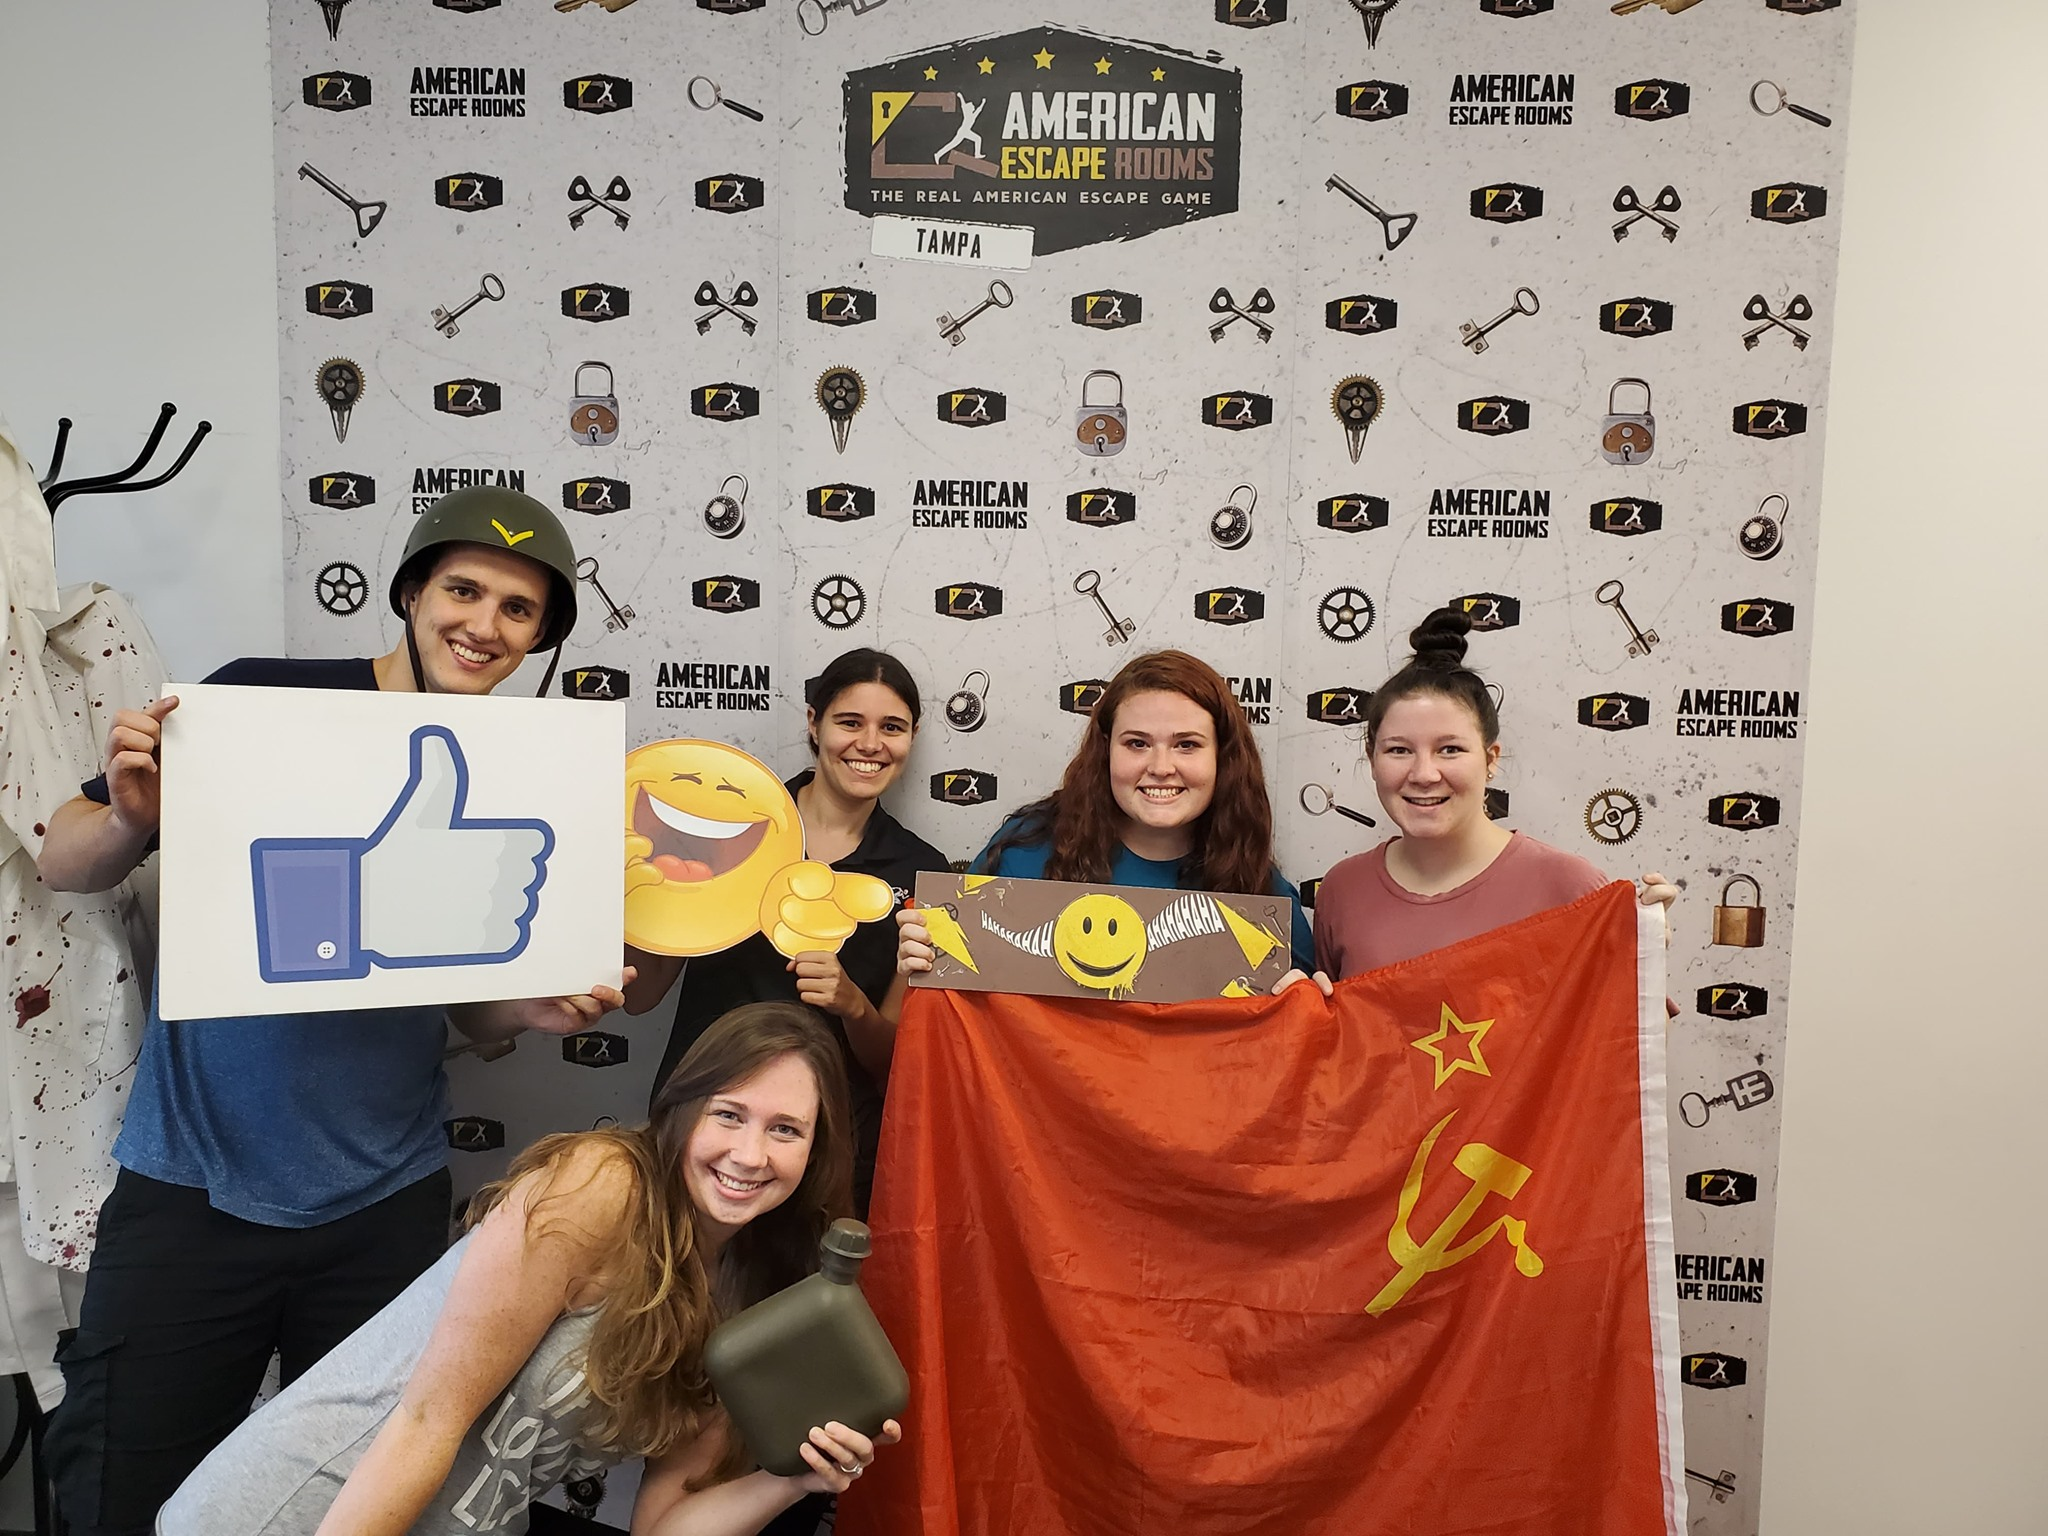 Undefeated played the Cold War Crisis - Tampa and finished the game with 15 minutes 45 seconds left. Congratulations! Well done!